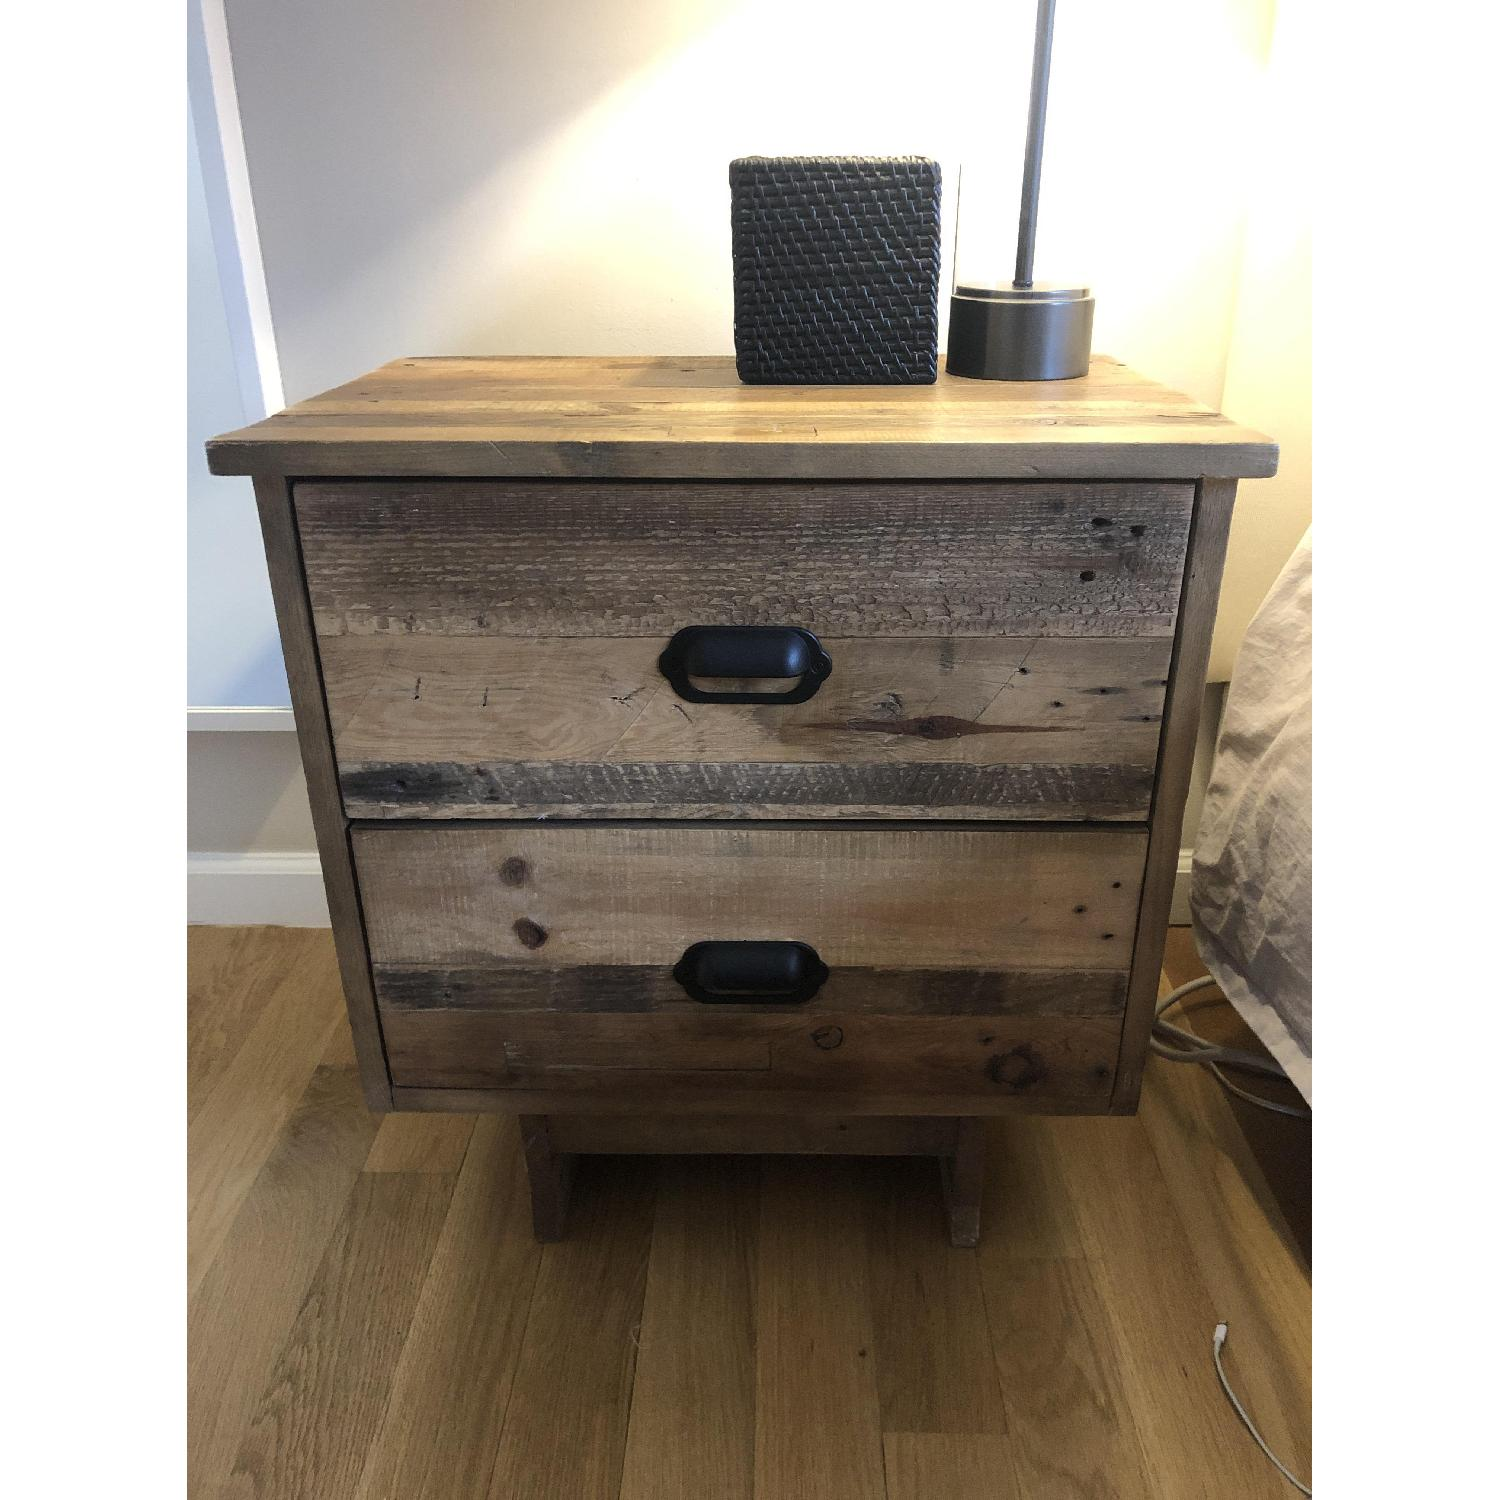 West Elm Emmerson Reclaimed Wood 2-Drawer Nightstand - image-3